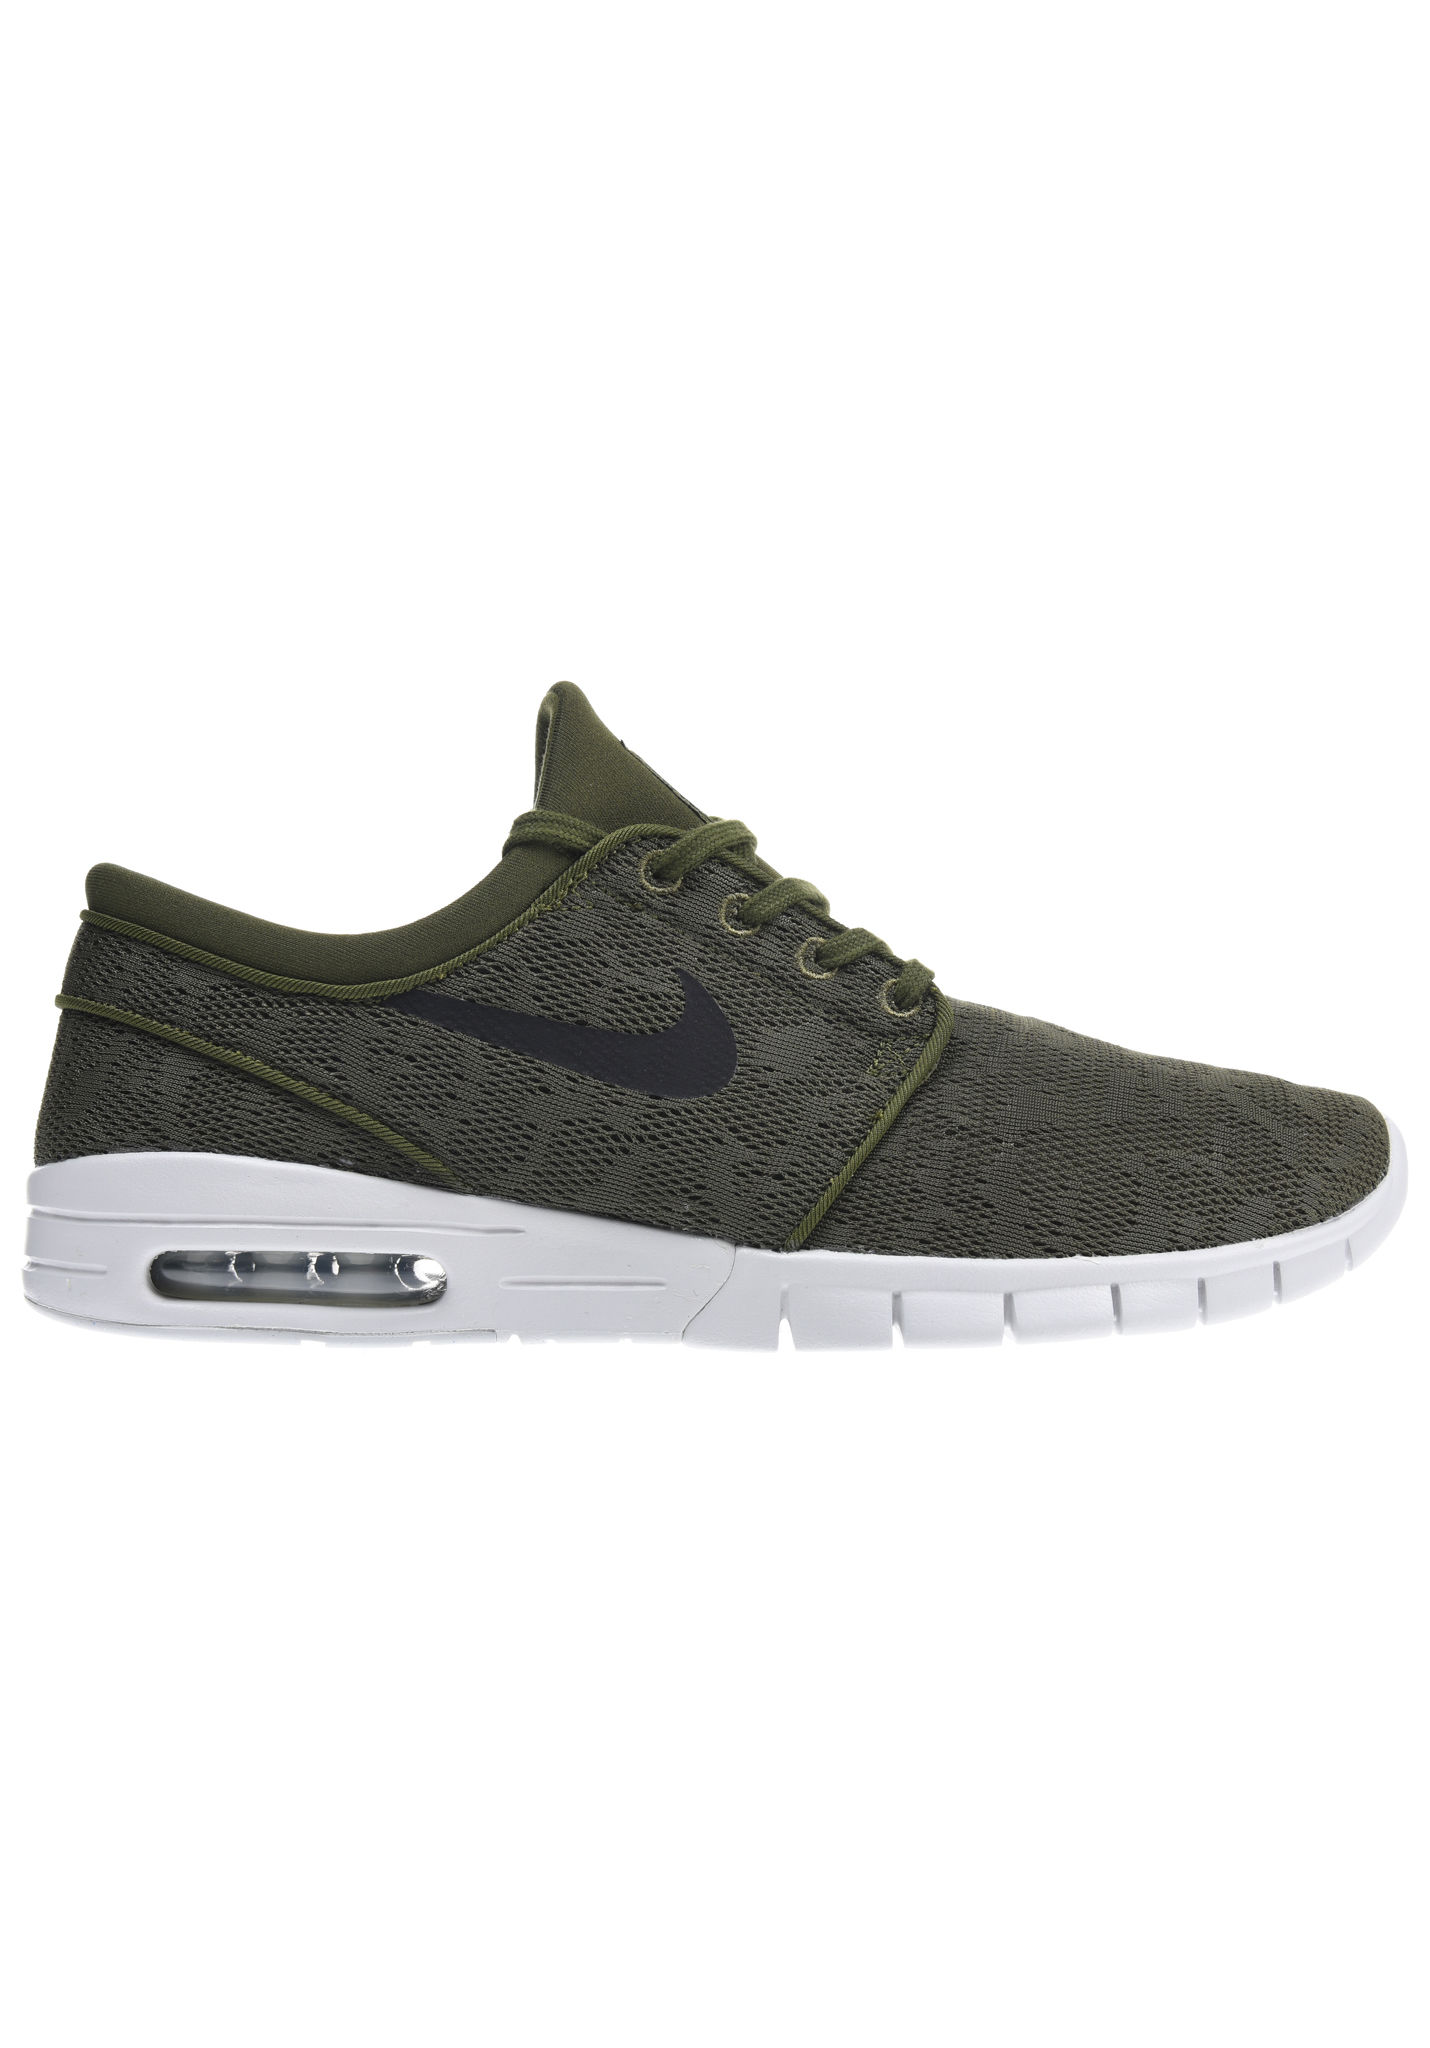 NIKE SB Stefan Janoski Max - Sneakers for Men - Green - Planet Sports 9ab1c4a8026b9